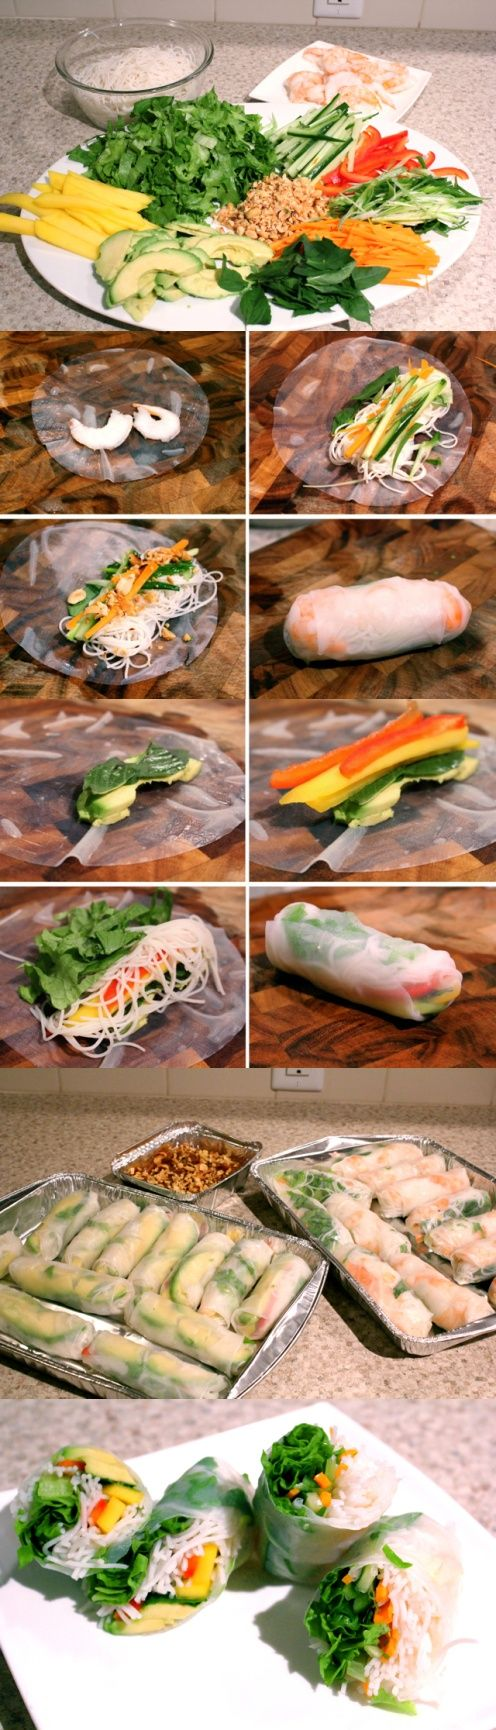 Shrimp Salad Rolls Avocado Mango Salad Rolls